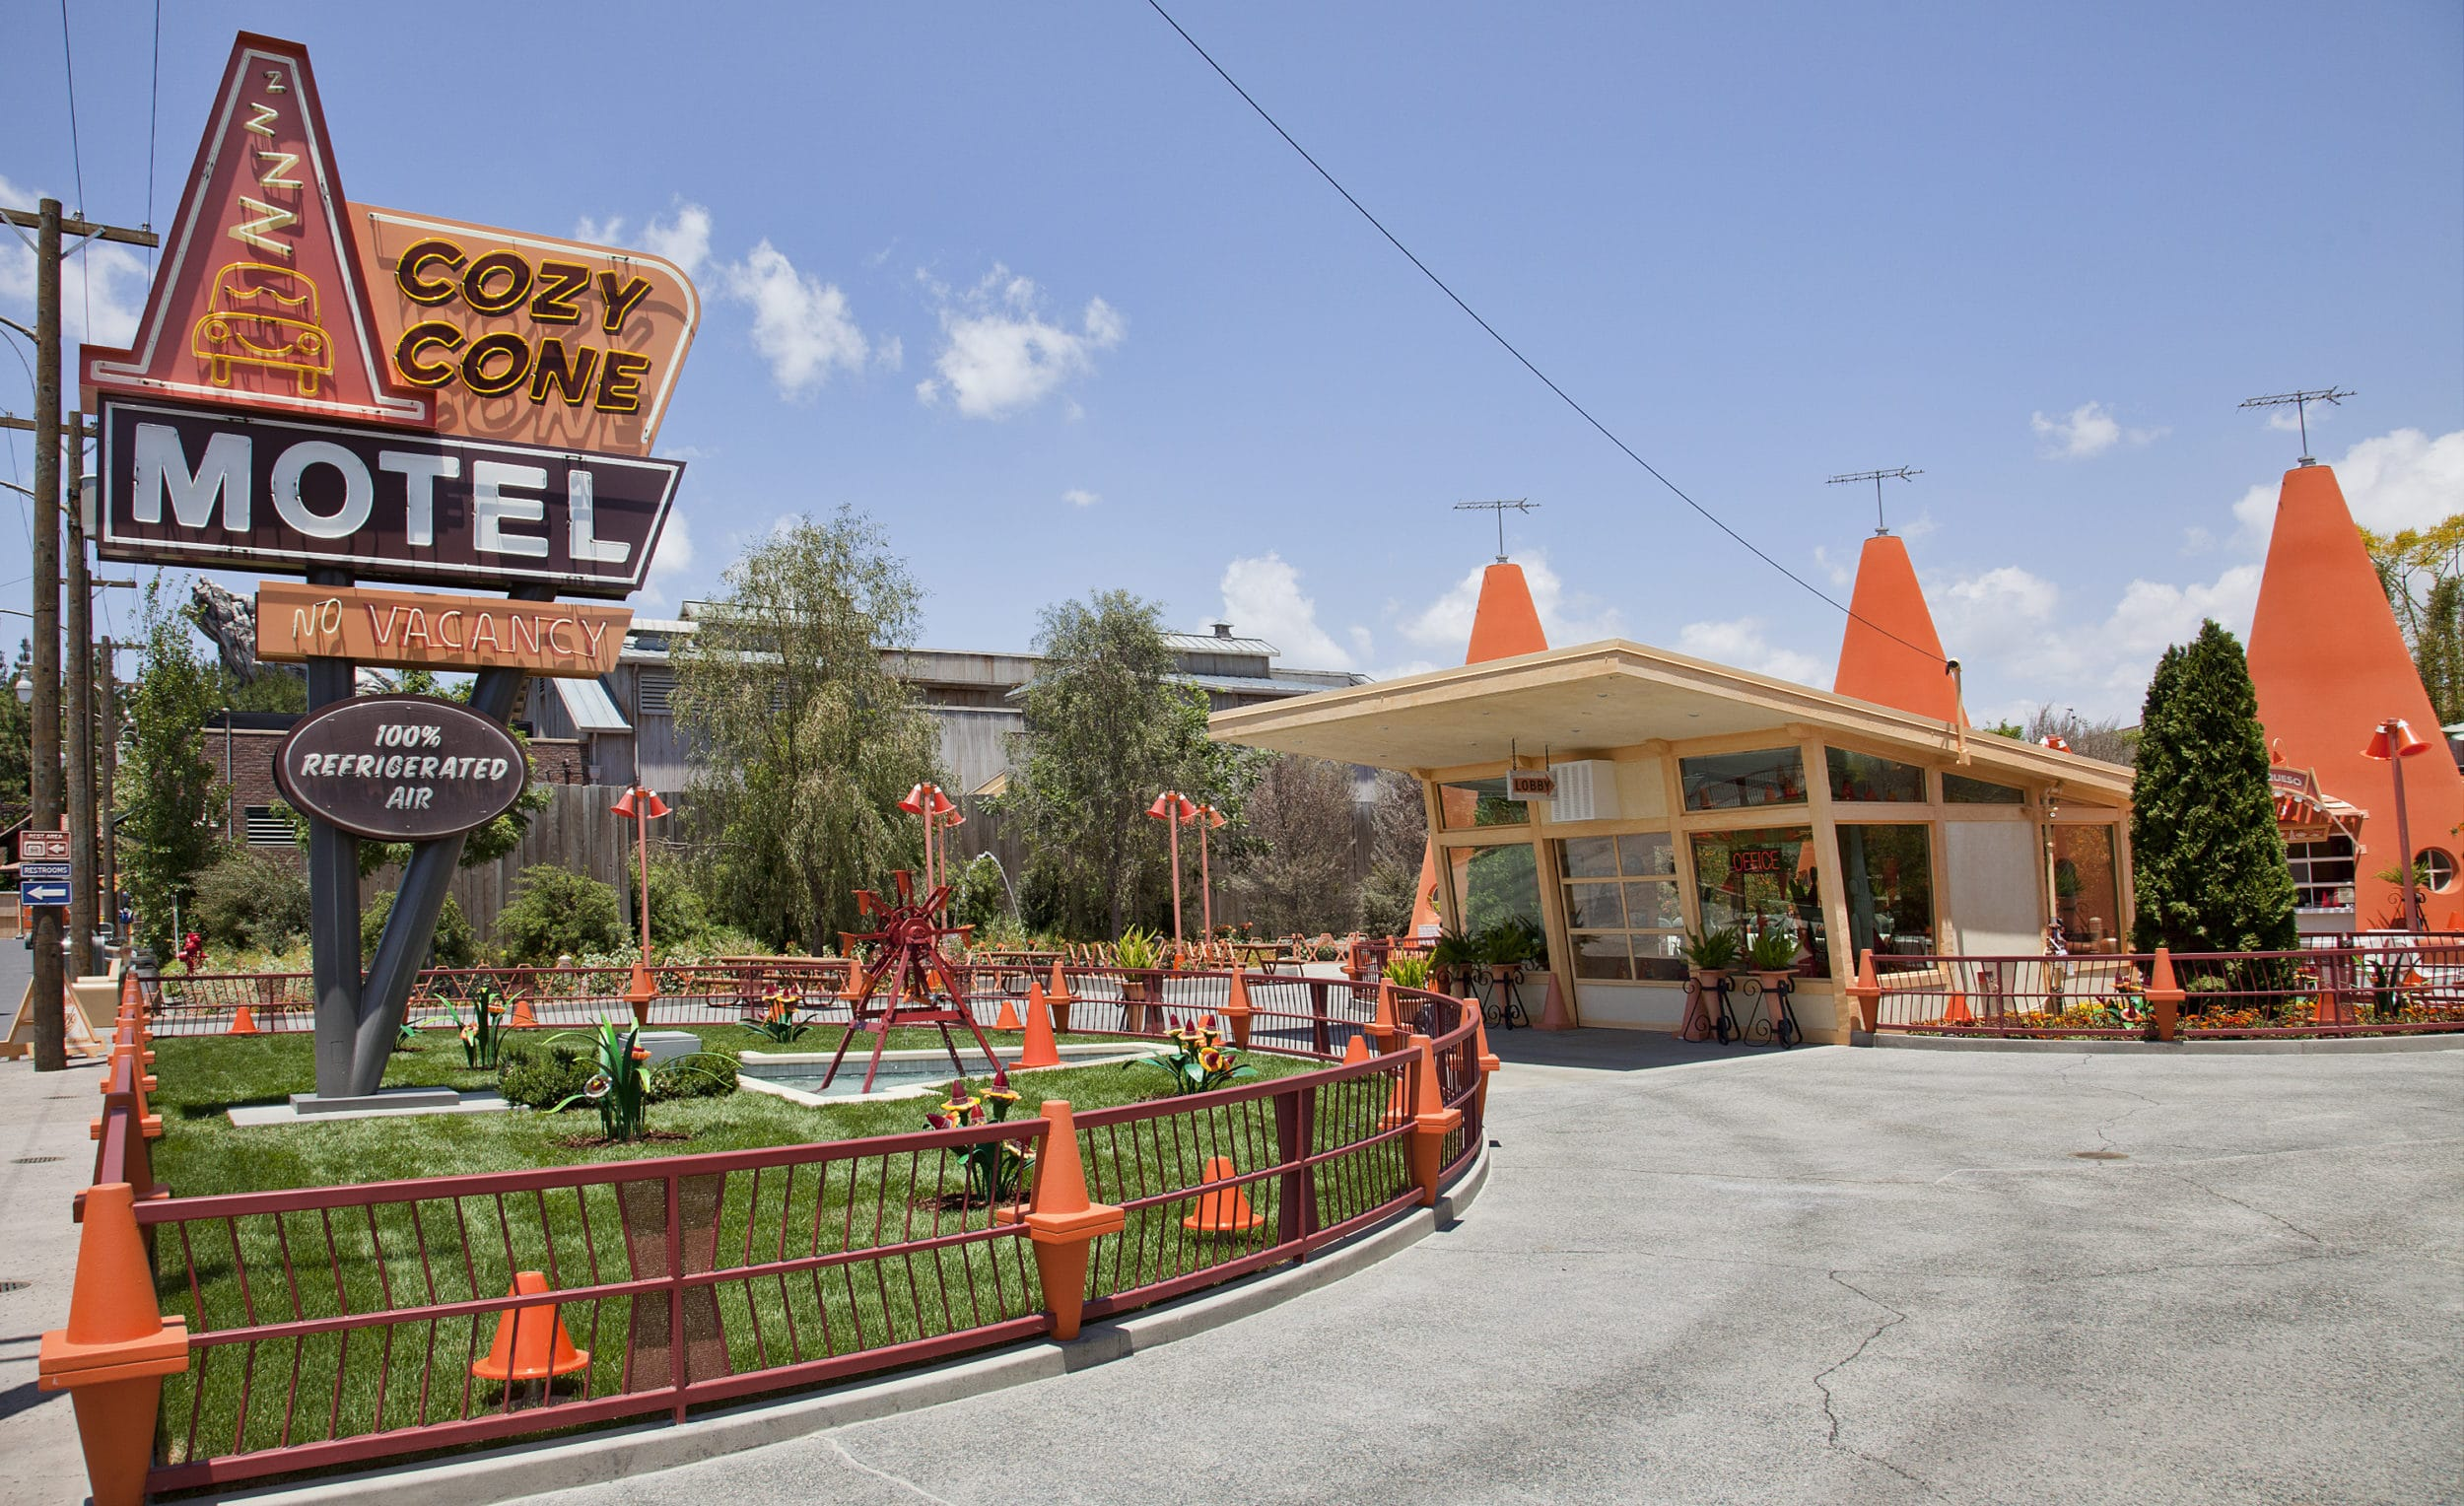 Cozy Cone Motel at Disney California Adventure